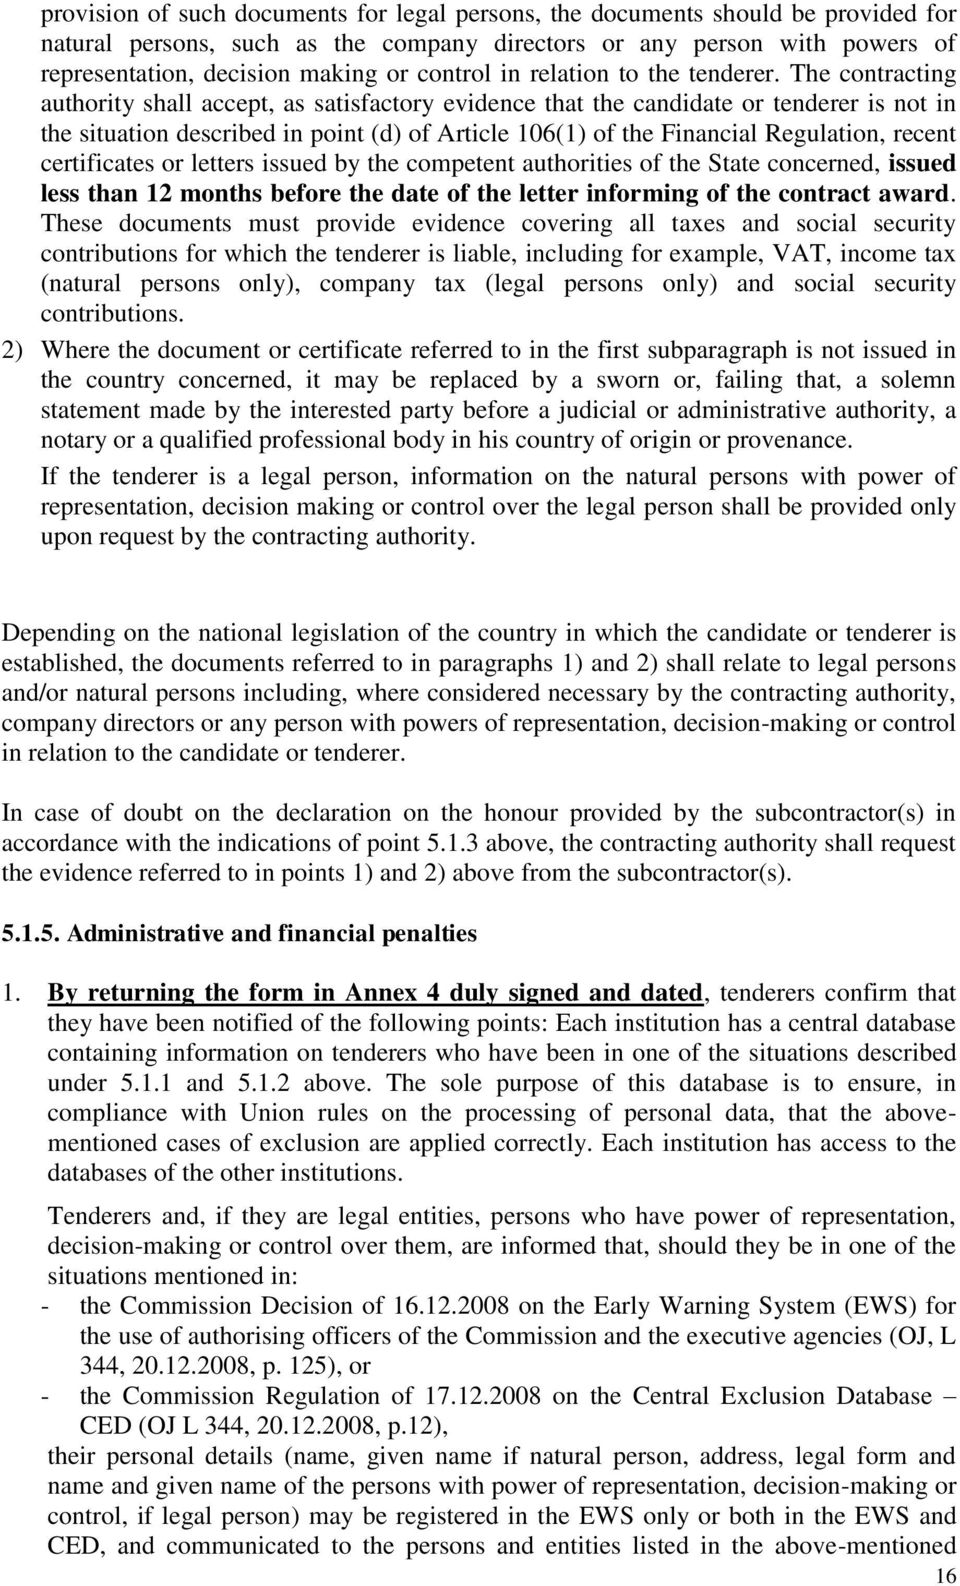 The contracting authority shall accept, as satisfactory evidence that the candidate or tenderer is not in the situation described in point (d) of Article 106(1) of the Financial Regulation, recent